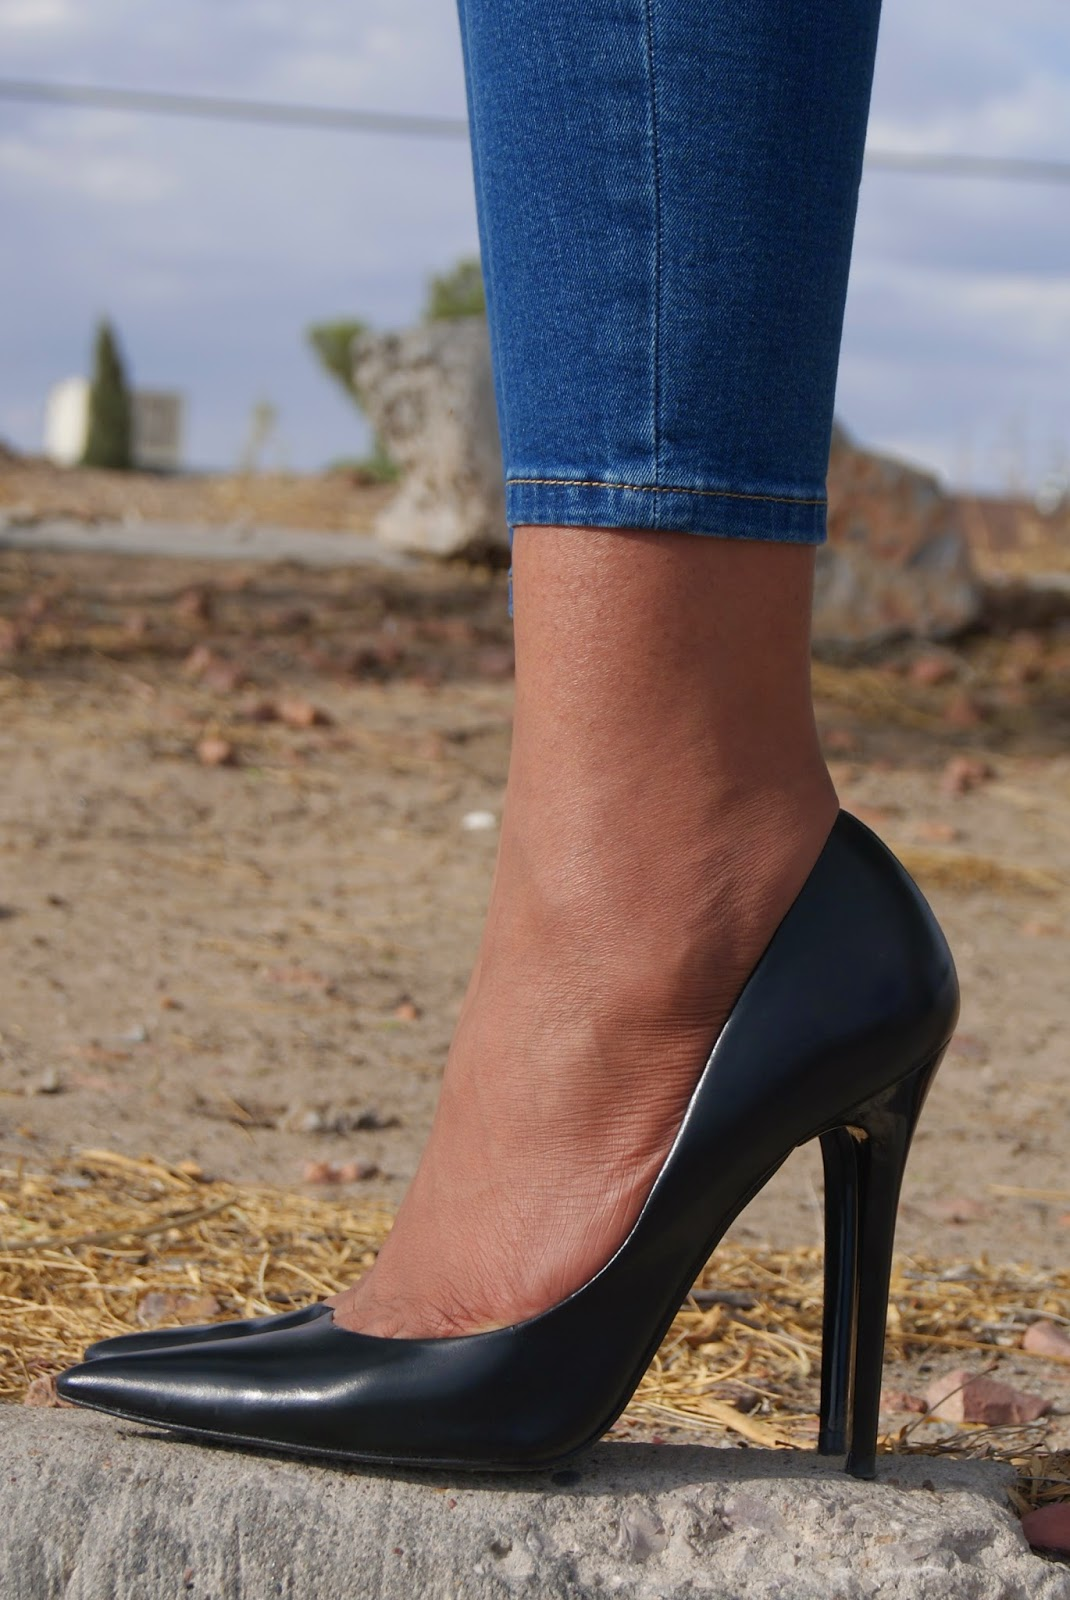 stiletto heels, zara pumps, pointy pumps, allthingsslim